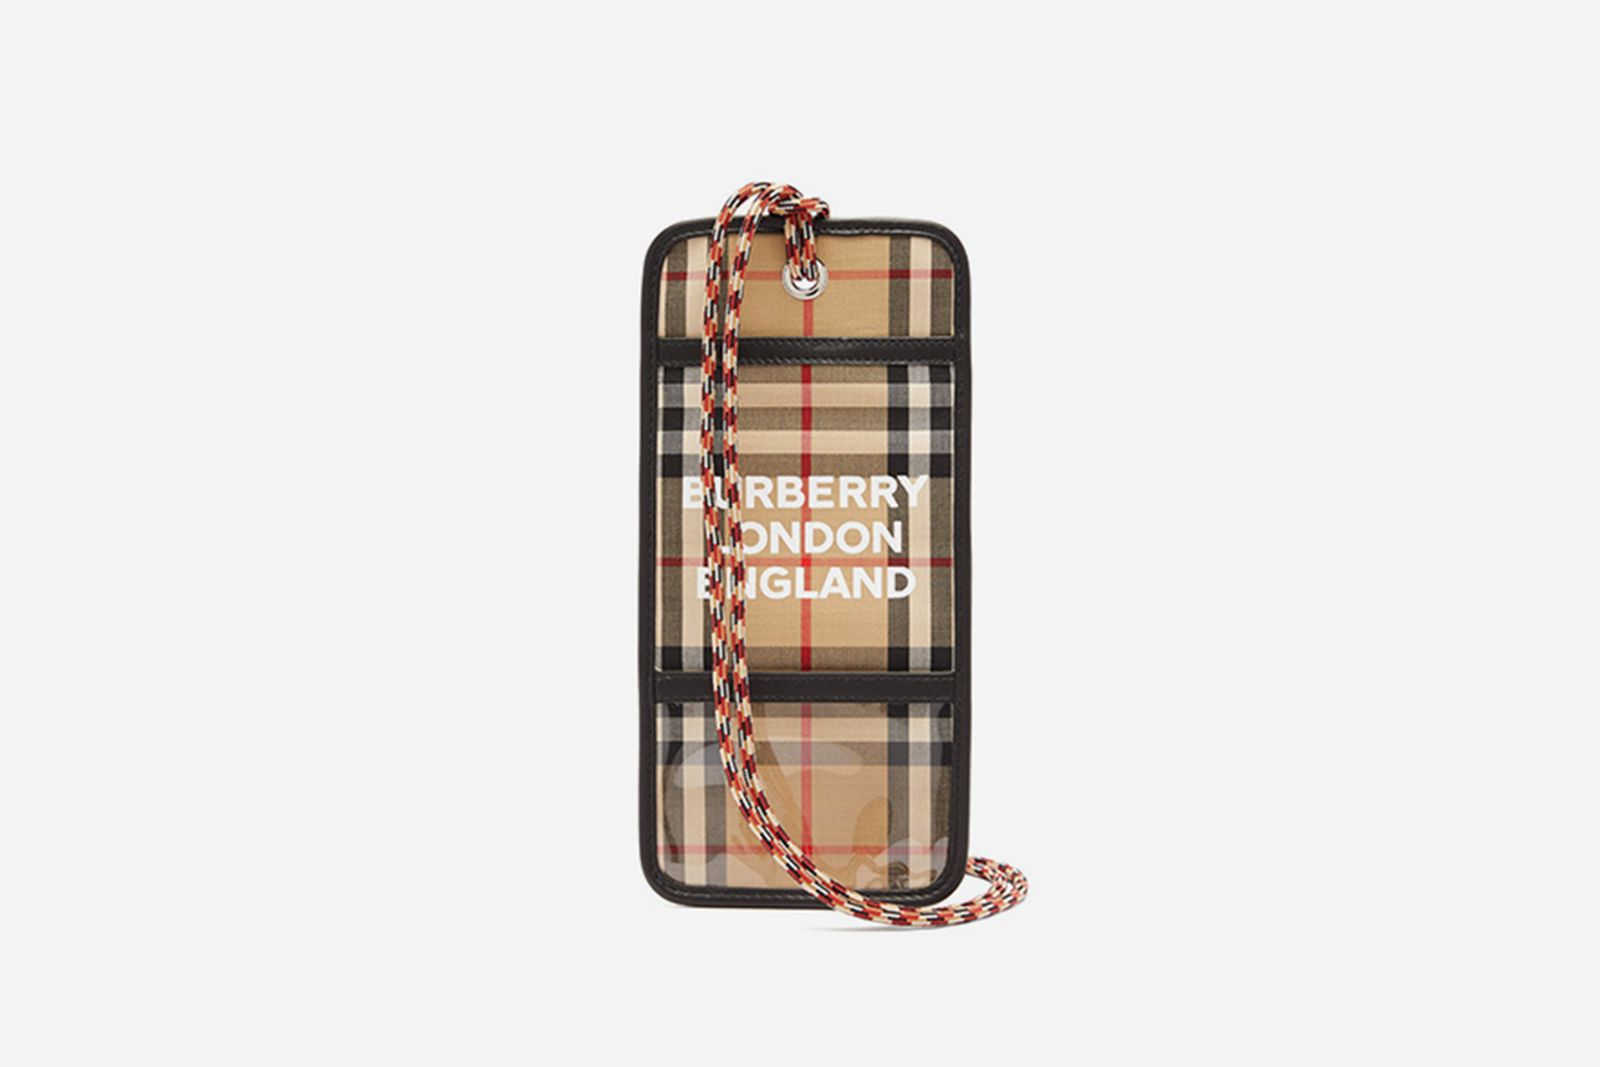 Burberry Cardholder Necklace